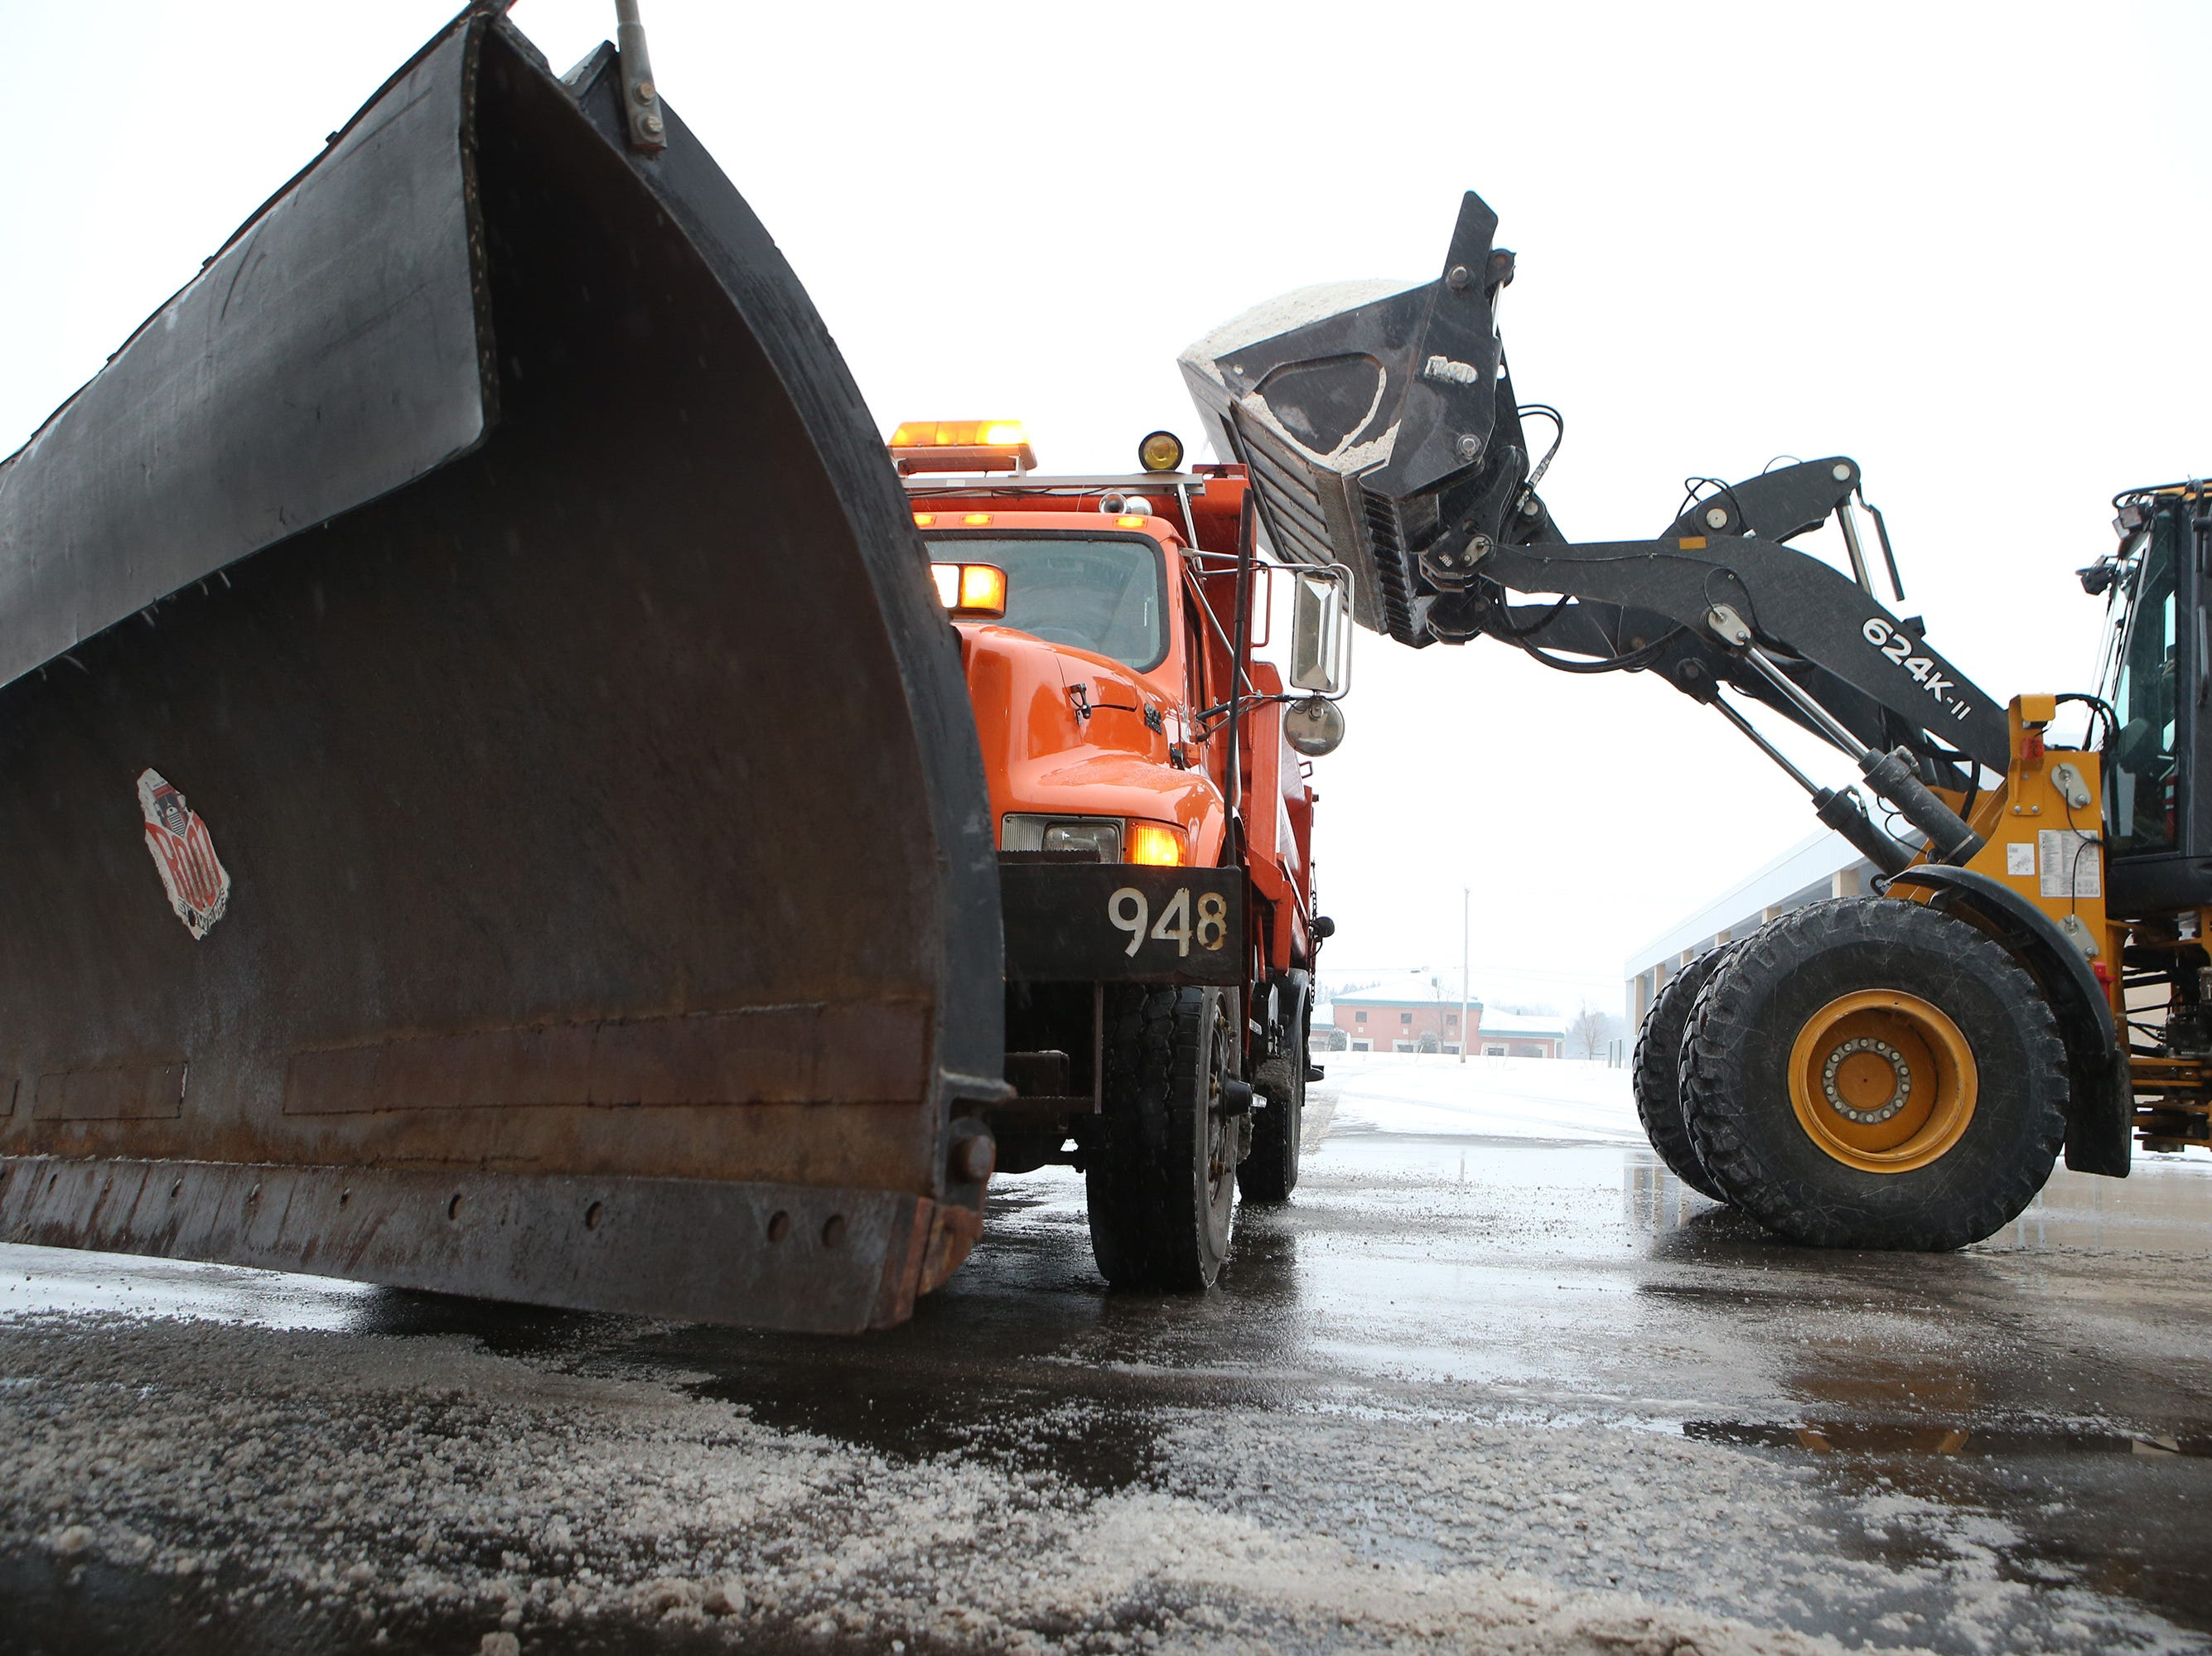 Eight tons of salt is loaded onto a Village of Menomonee Falls plow truck at the Public Works Yard on Good Home Road as snow from the Jan. 22 snowstorm begins to fall. The salt load lasts about one hour of driving one of the Village's snow clearing and salting routes.